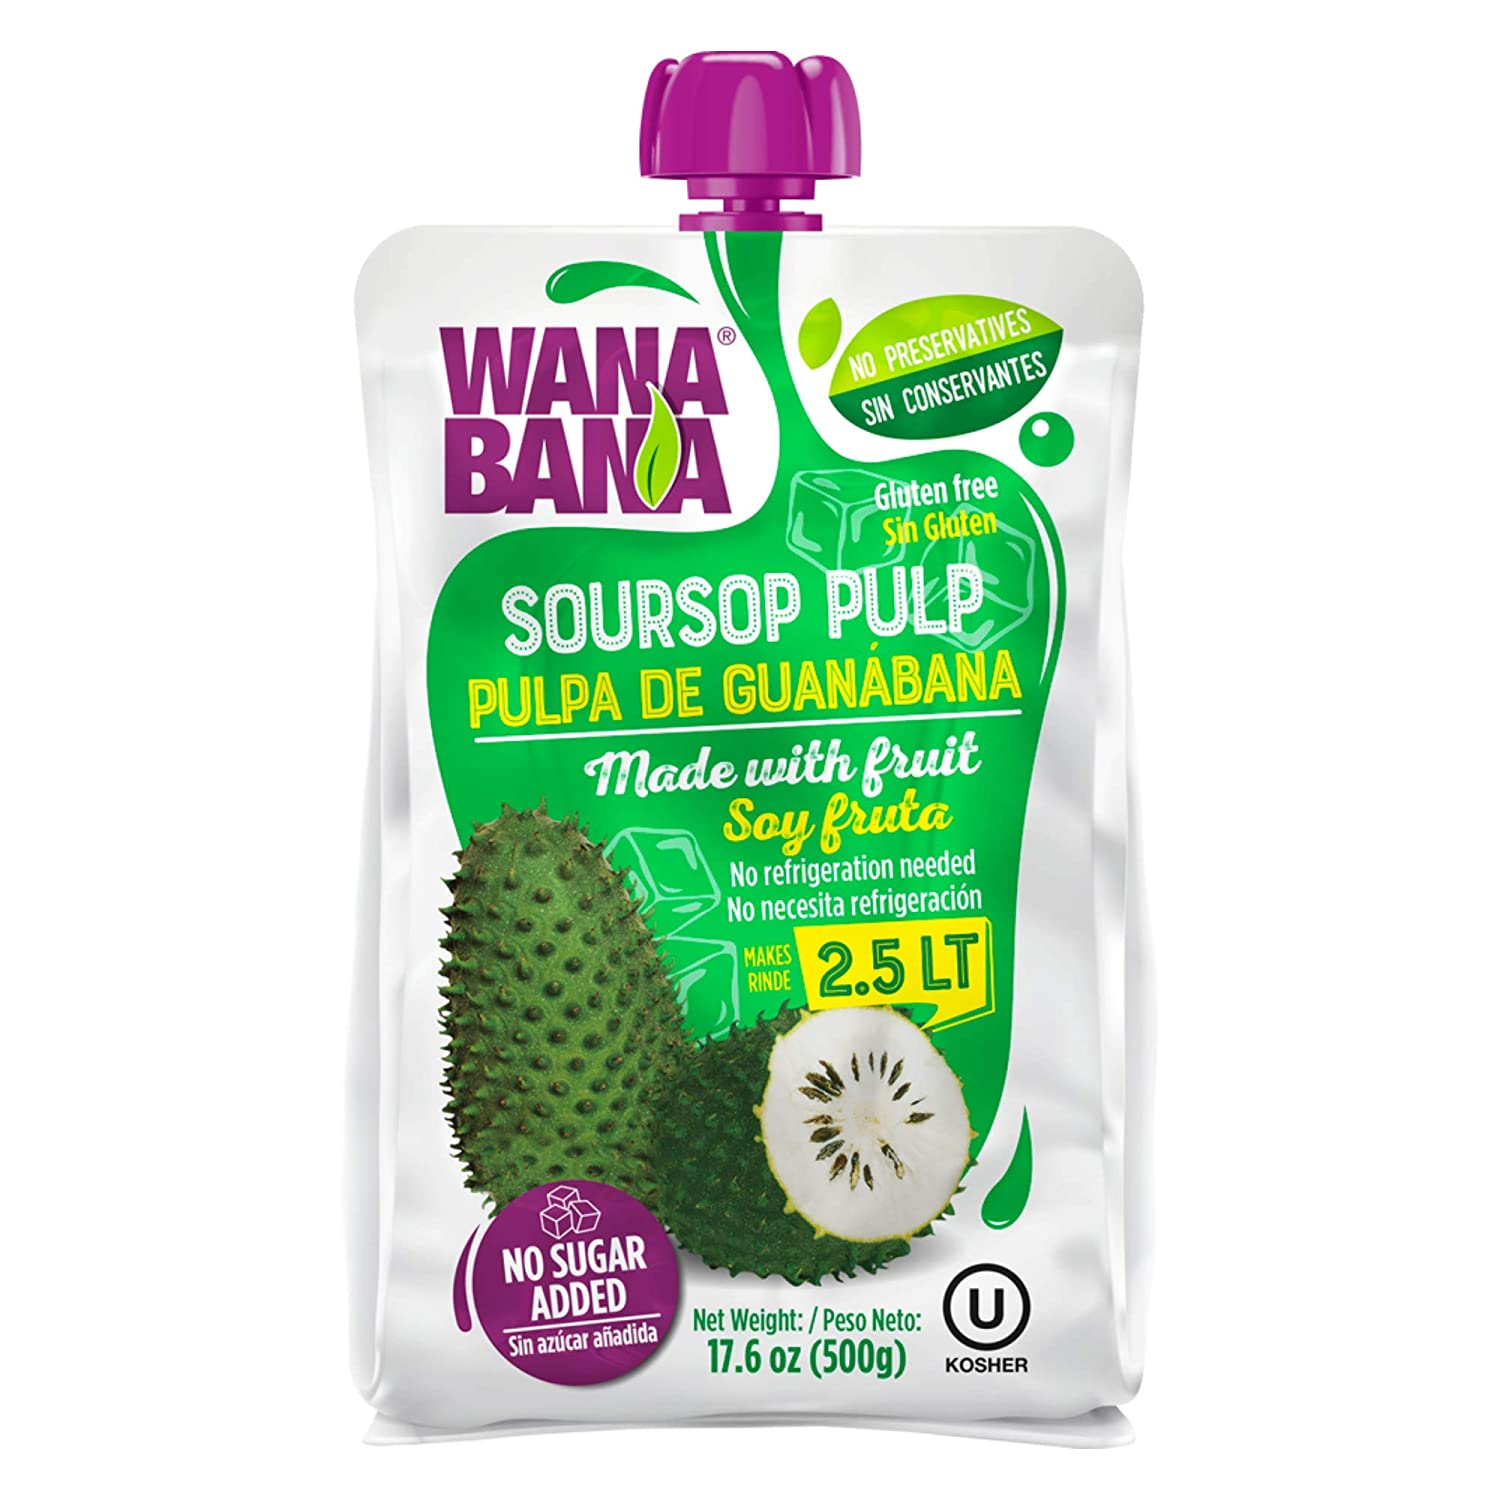 Wanabana 100 Percent Real and Natural Fruit Pulp for Juice Making, Soursop, 17.64 Ounce (Pack of 1)